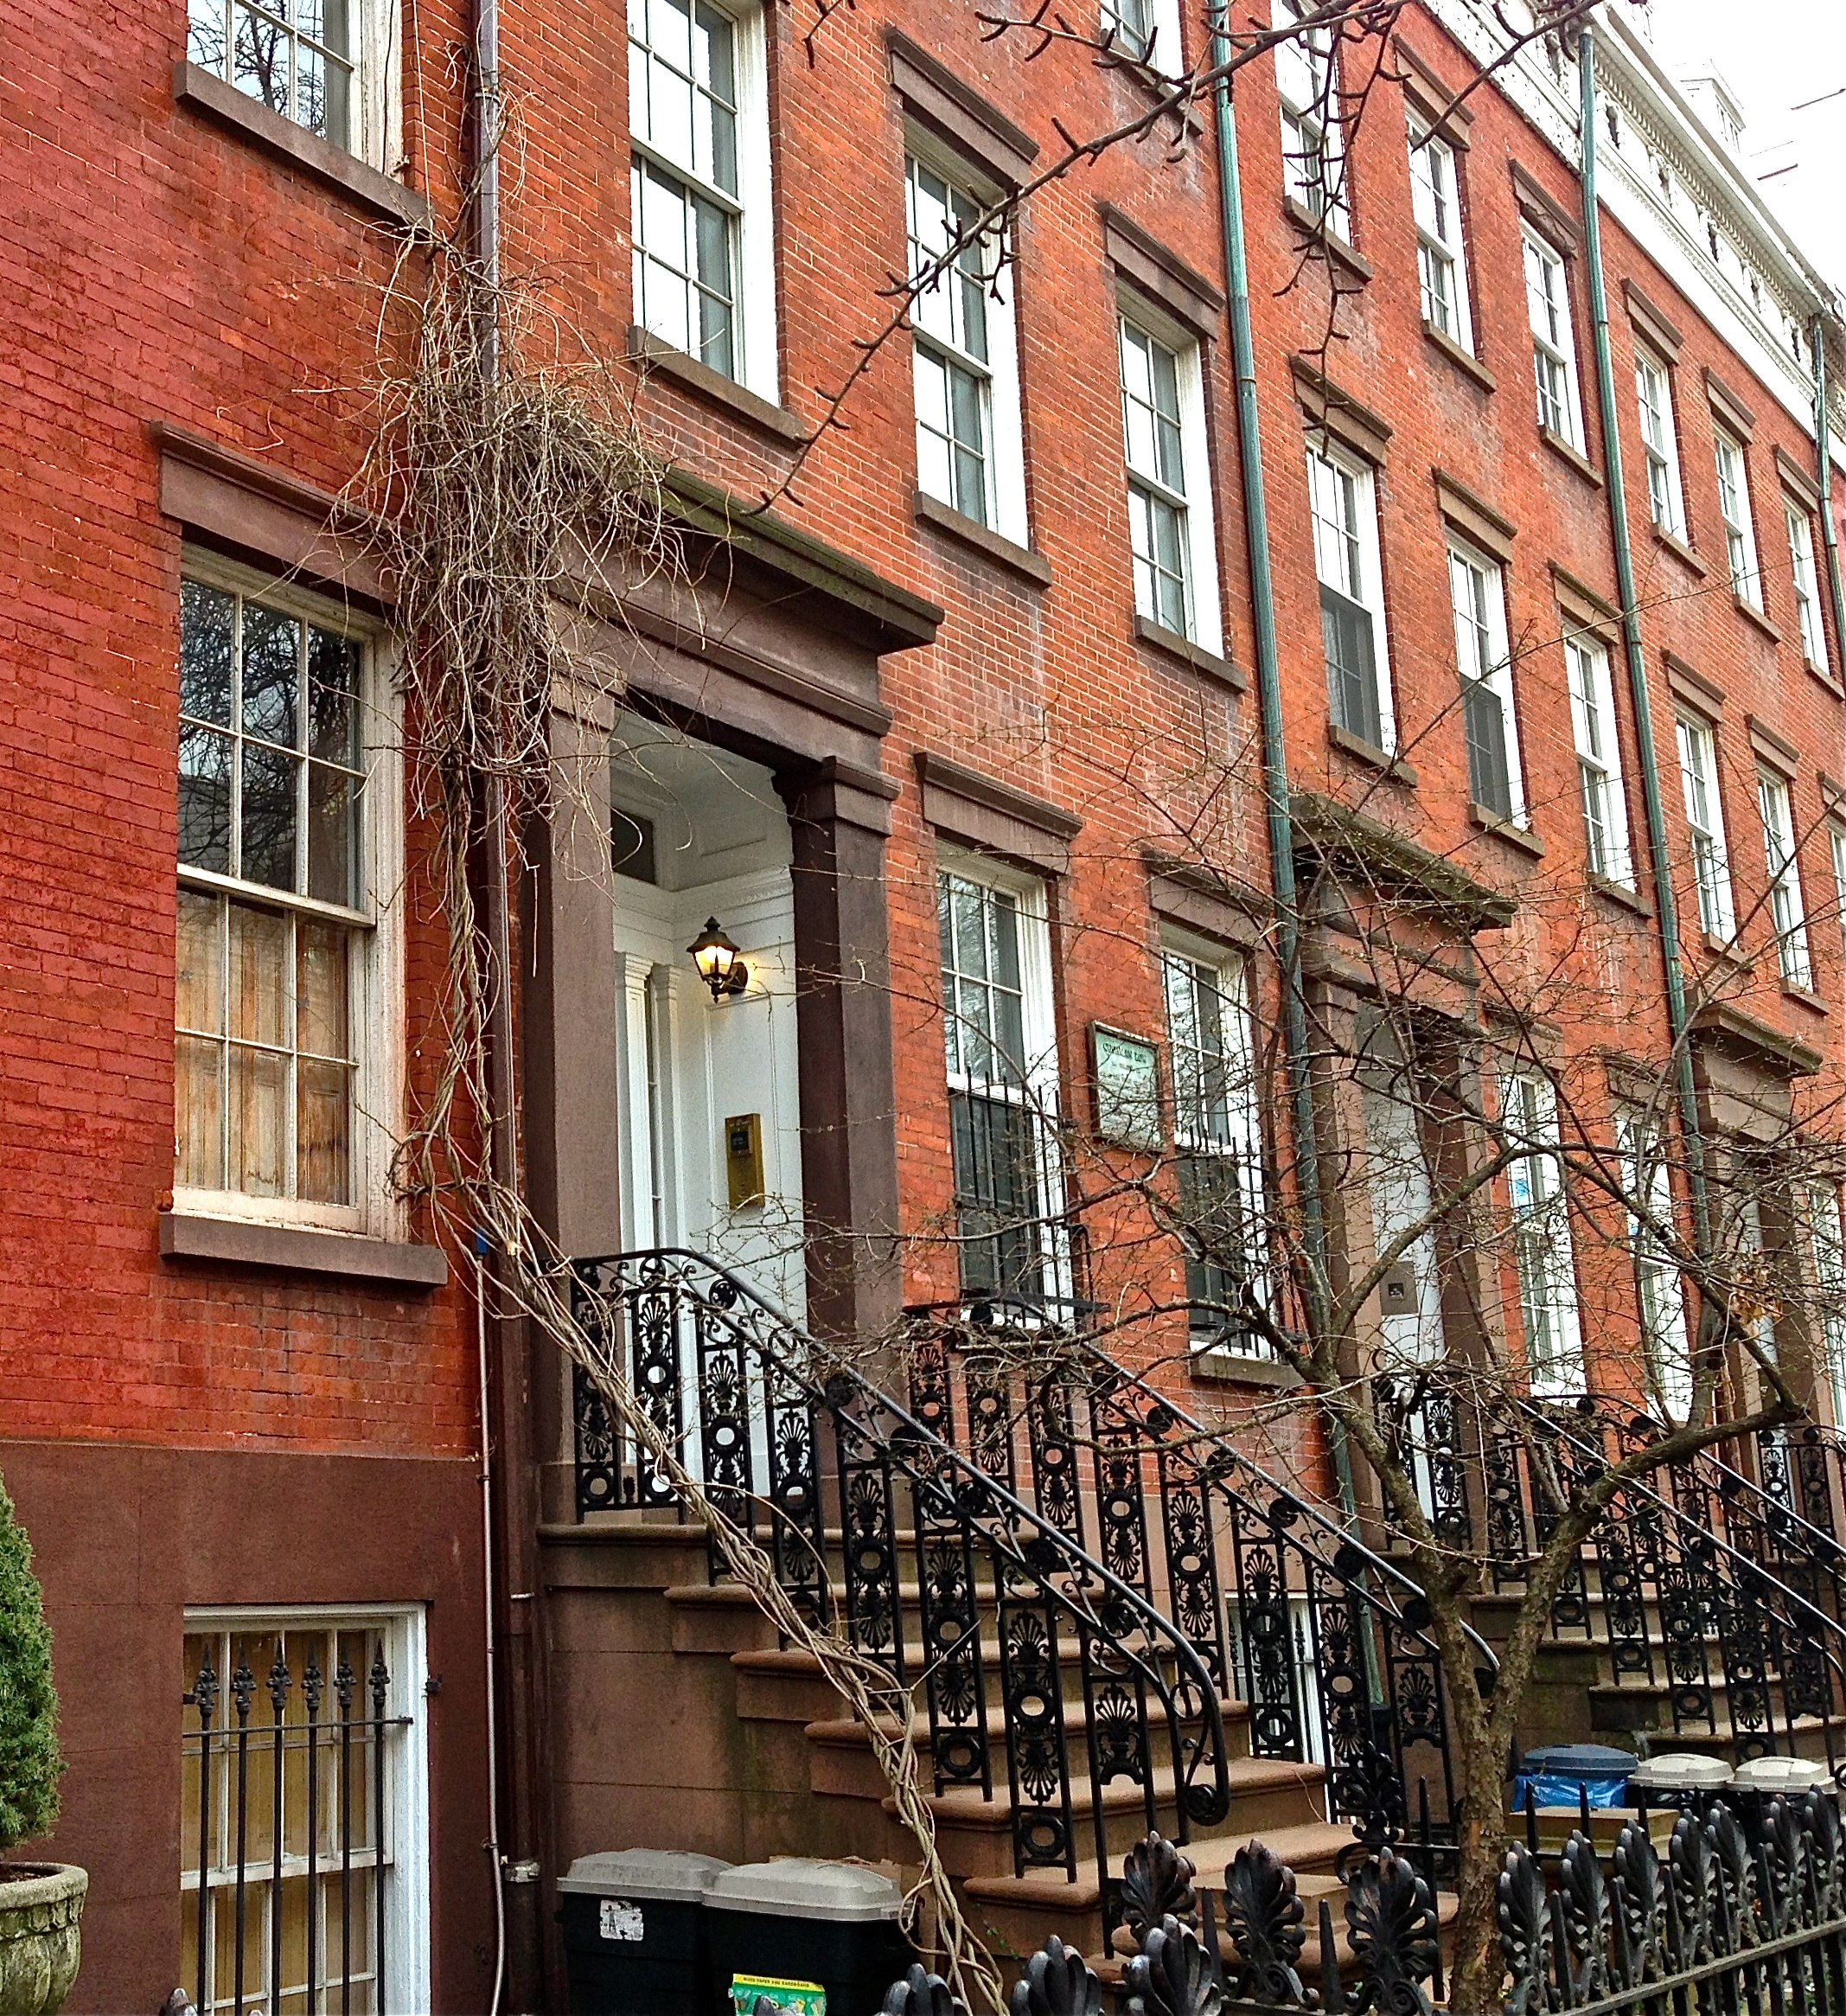 Nyc Housing Gov: The Loveliest Stretch Of Houses In Old Chelsea